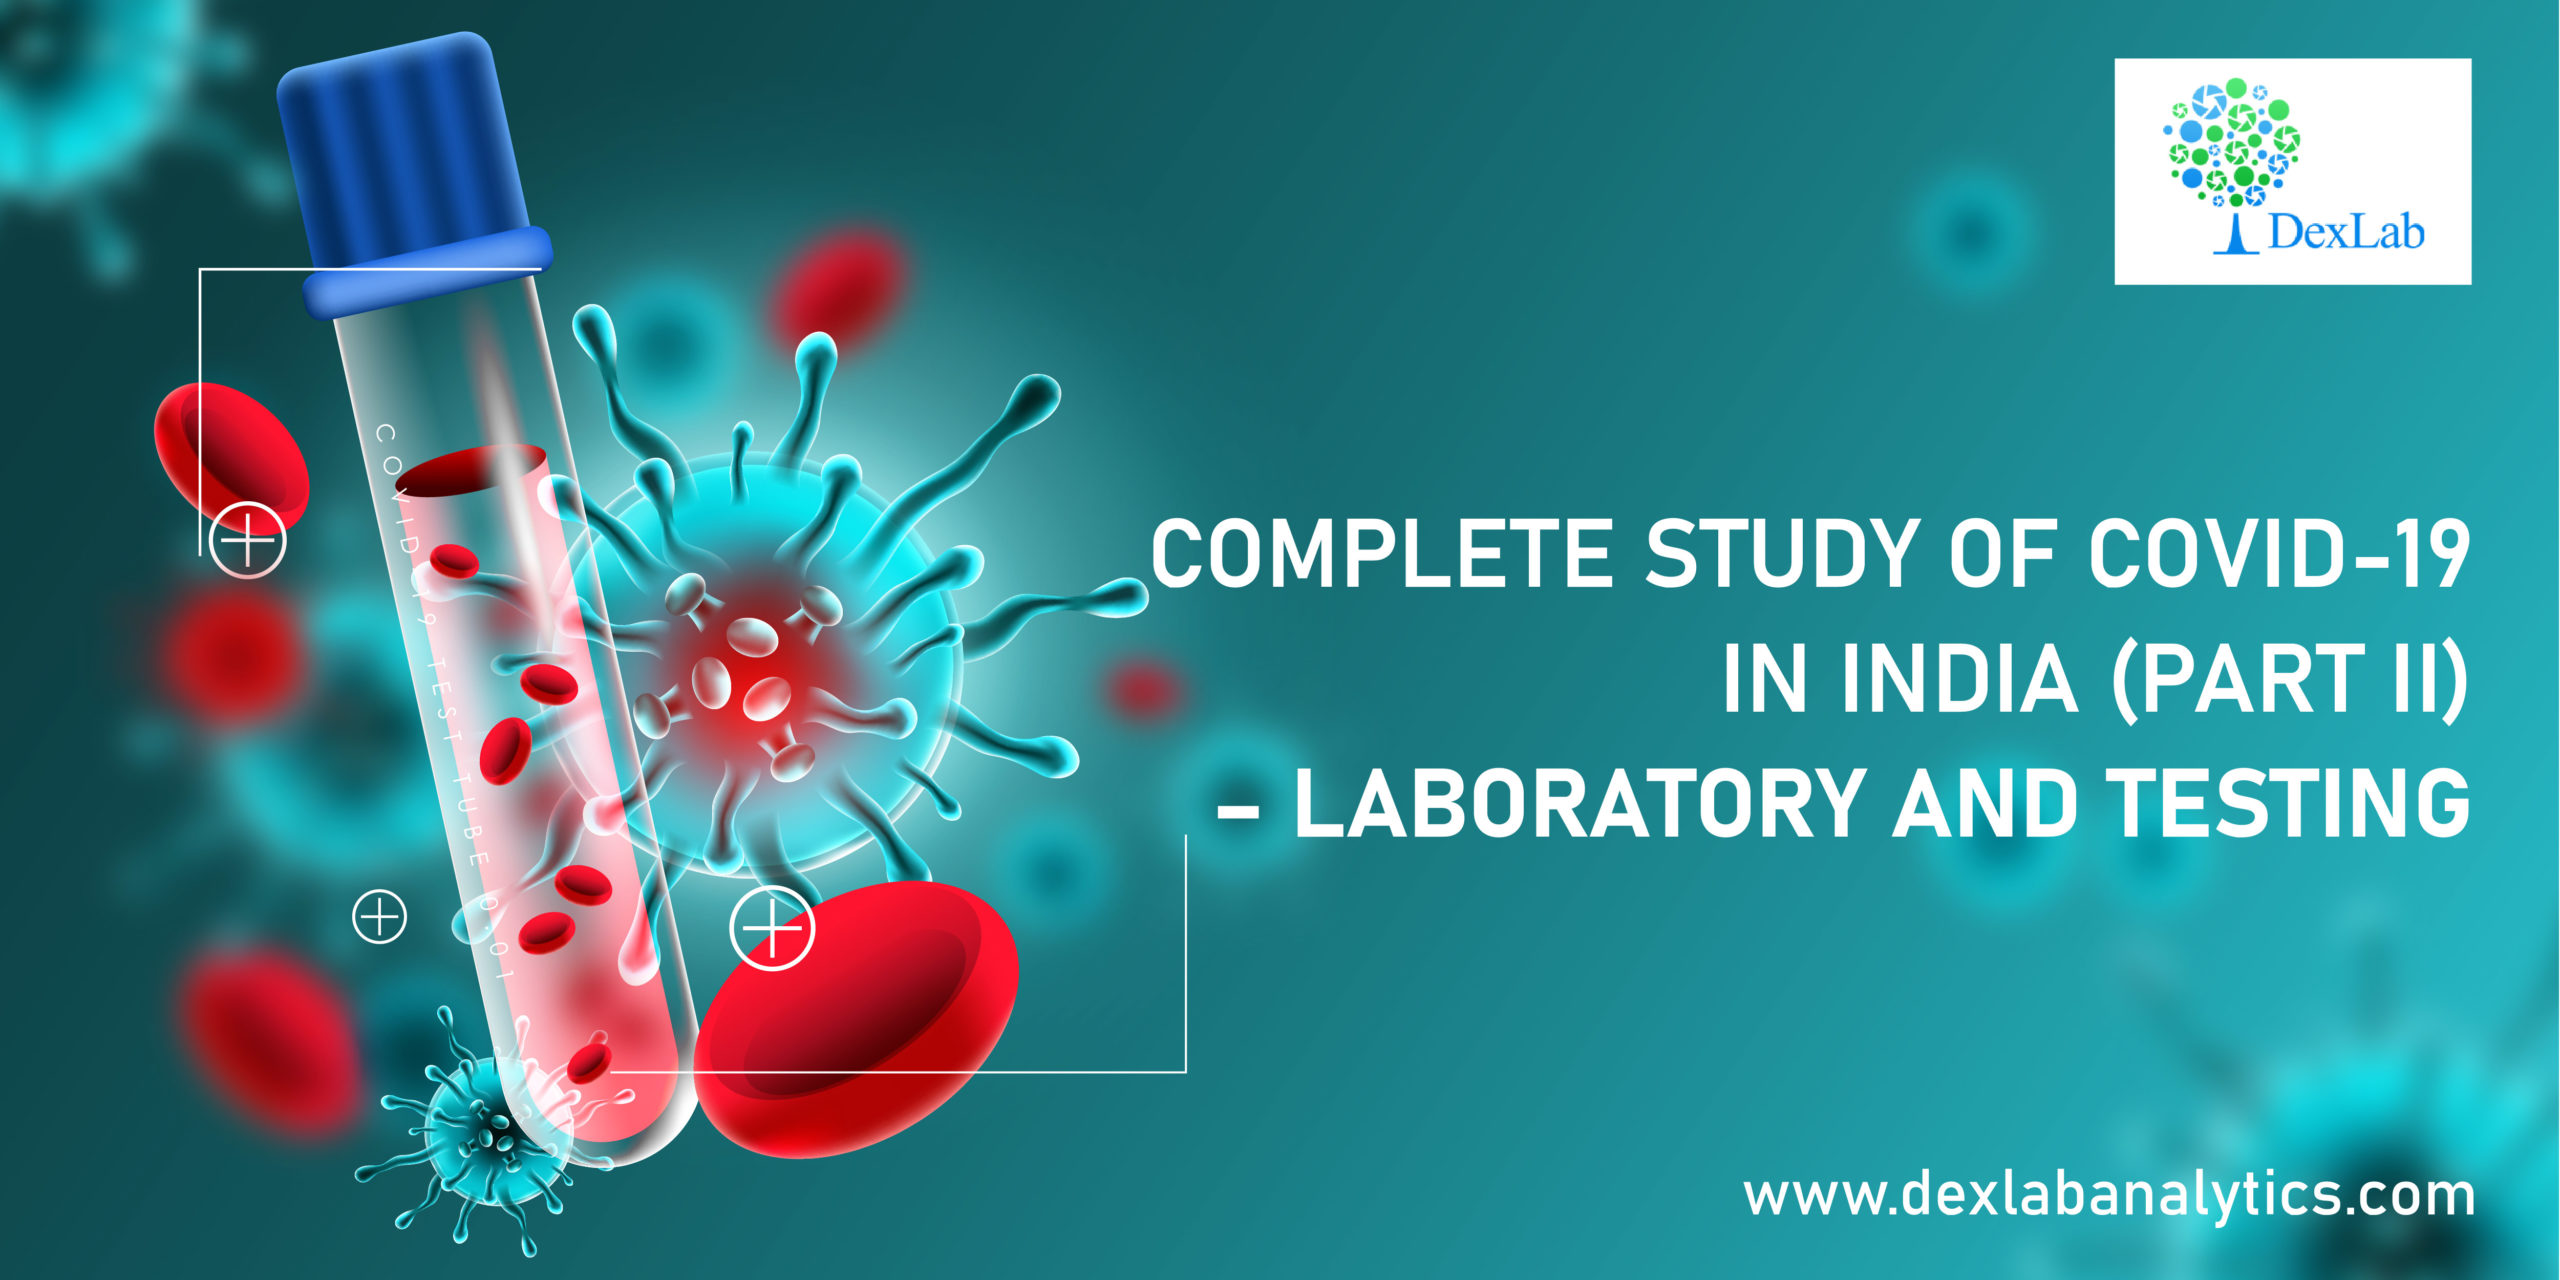 Complete study of COVID-19 in India  (Part II) – Laboratory and Testing